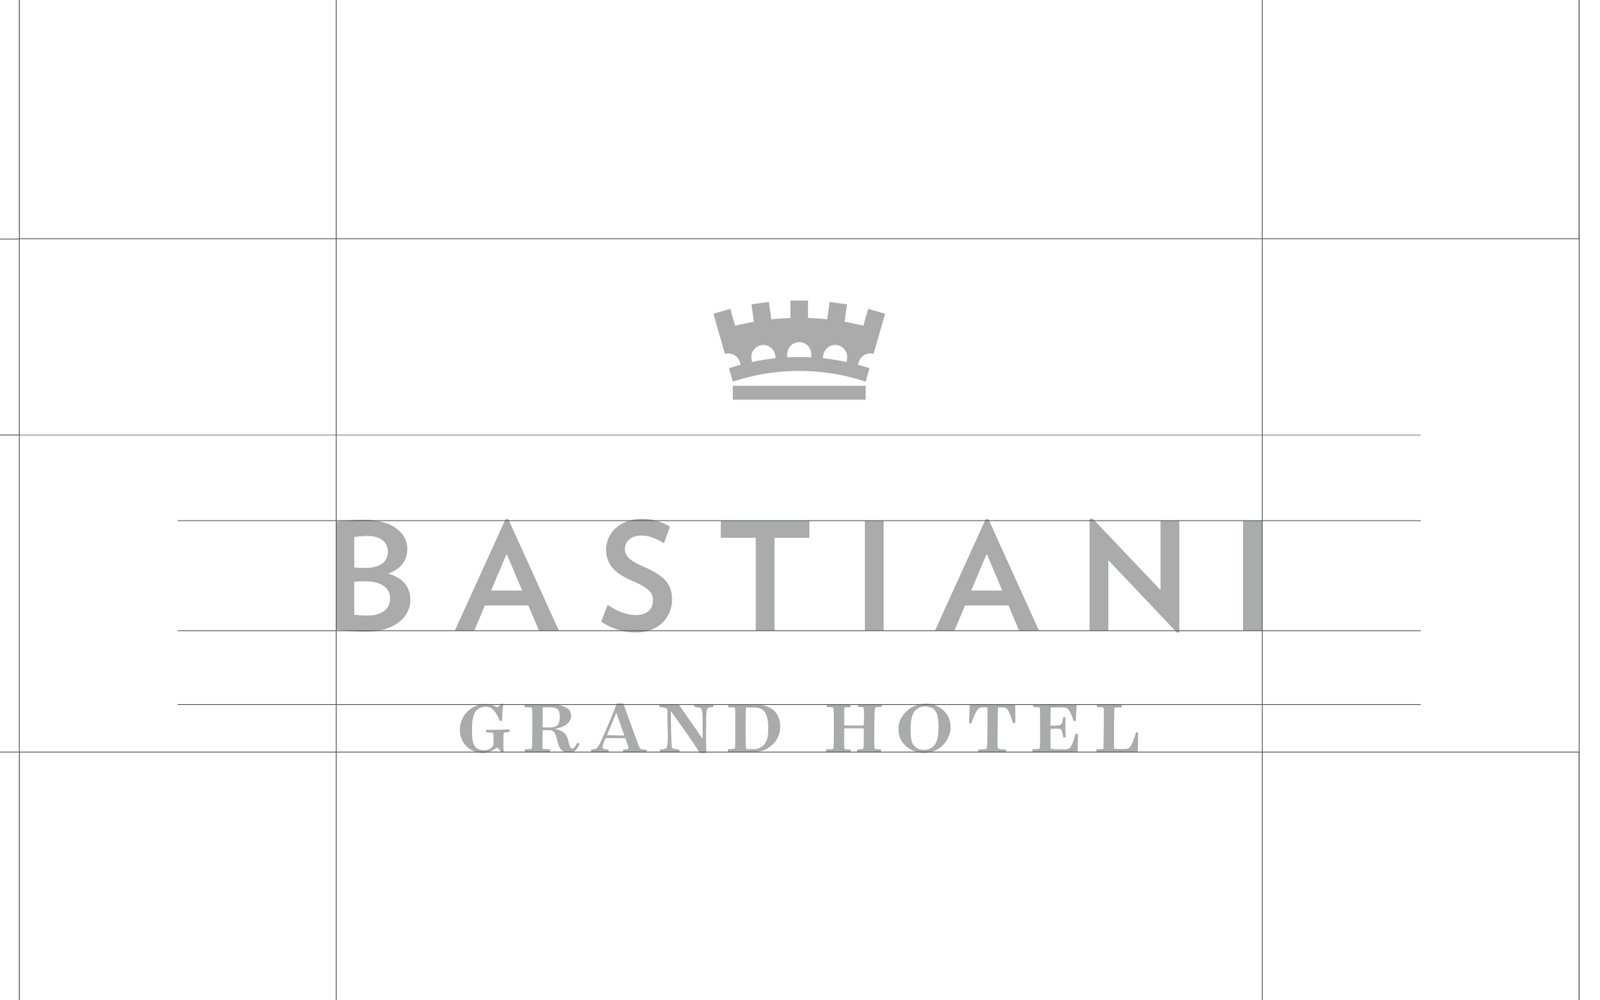 New logo for Grand Hotel Bastiani